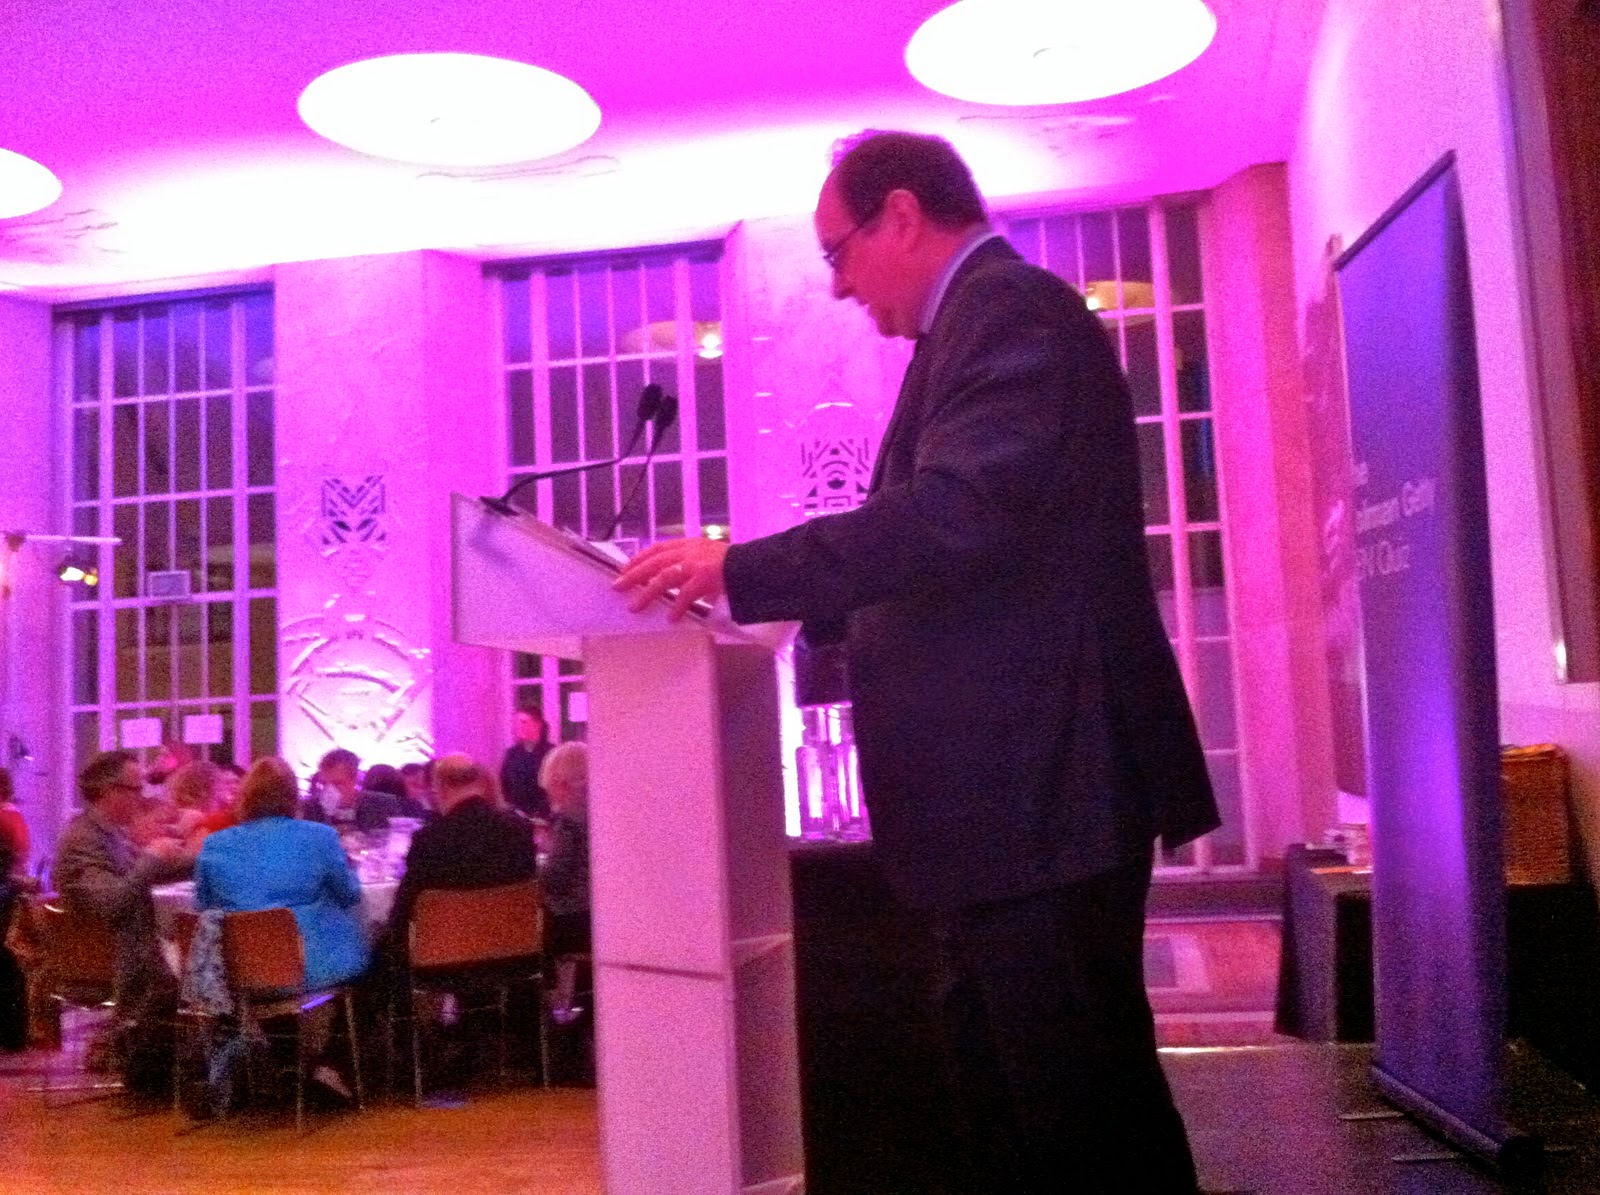 ENGLISH PEN QUIZ 2011 AT RIBA WITH JAMES NAUGHTIE